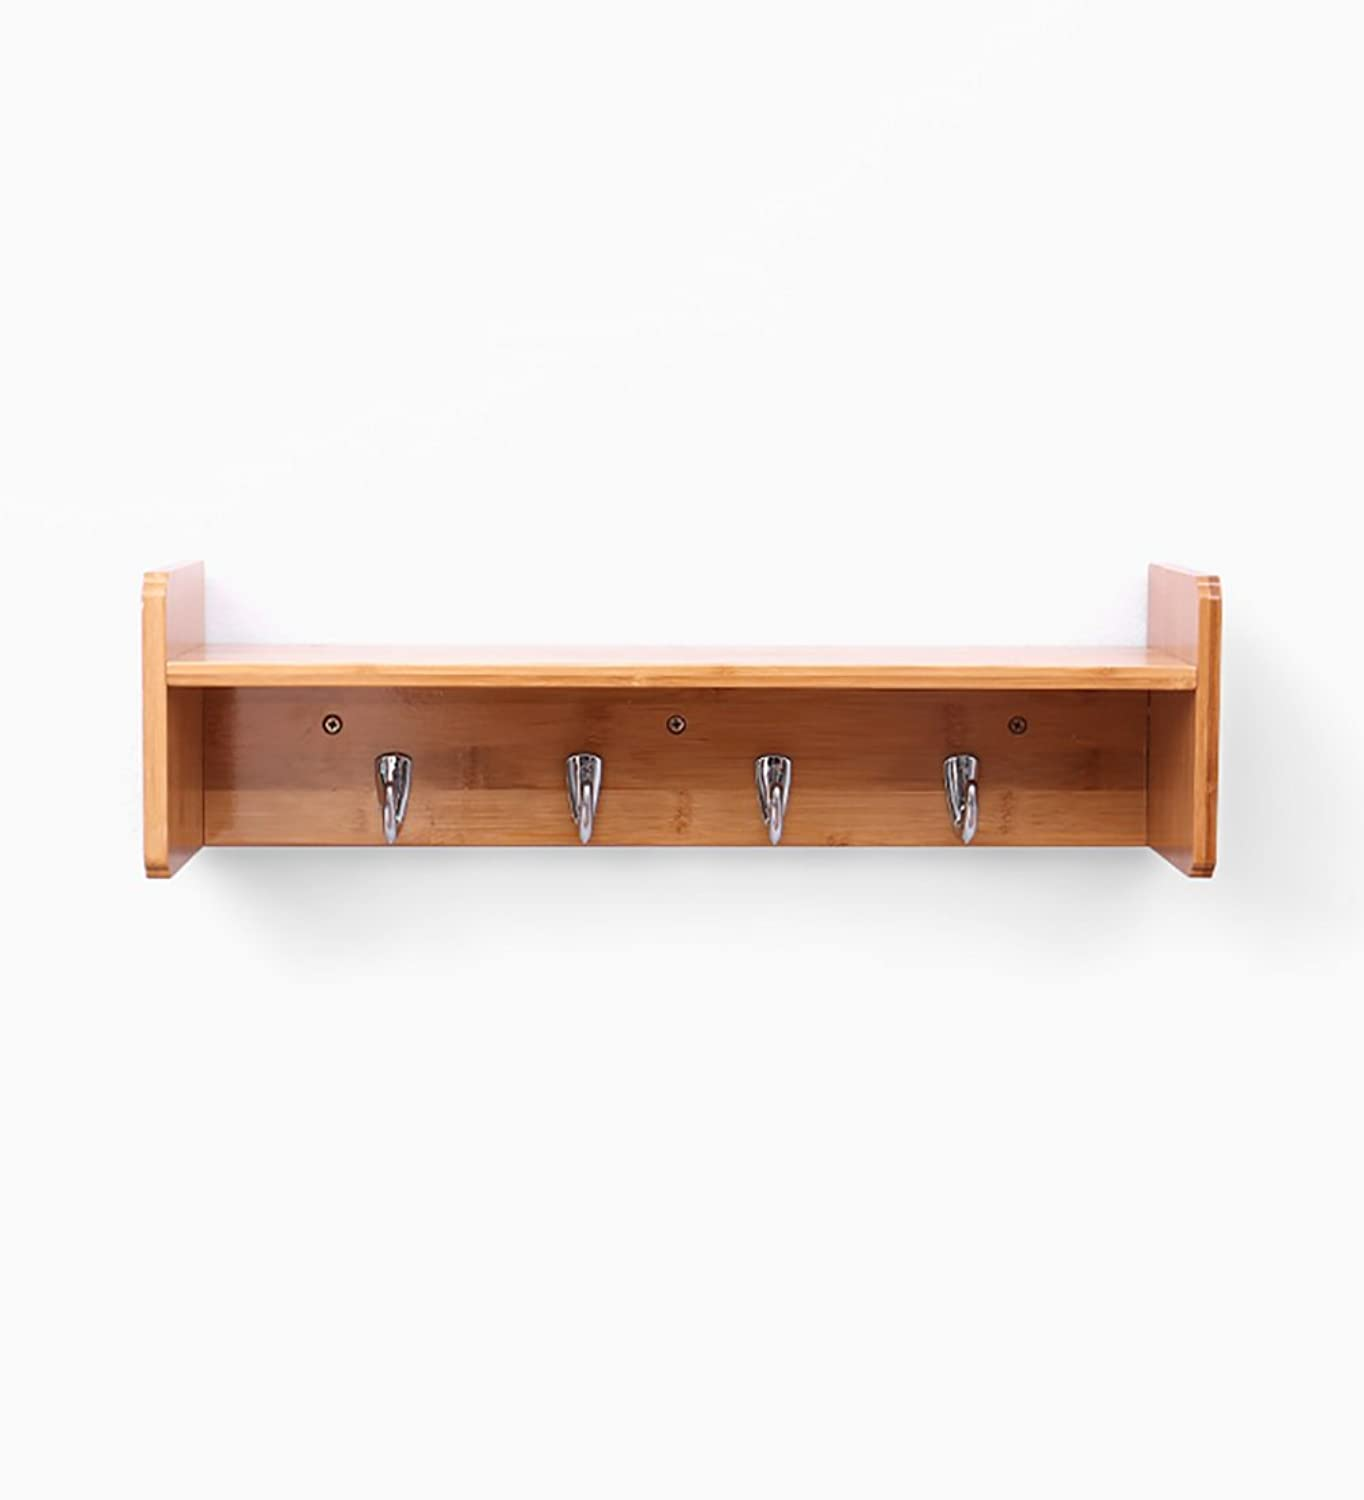 ZEMIN Wall-Mounted Coat Rack Hanger Hat Stand Clothes Holder Decoration Shelf Multi-Hooks Bamboo, log color, 2 Sizes Available ( Size   521514.5CM )